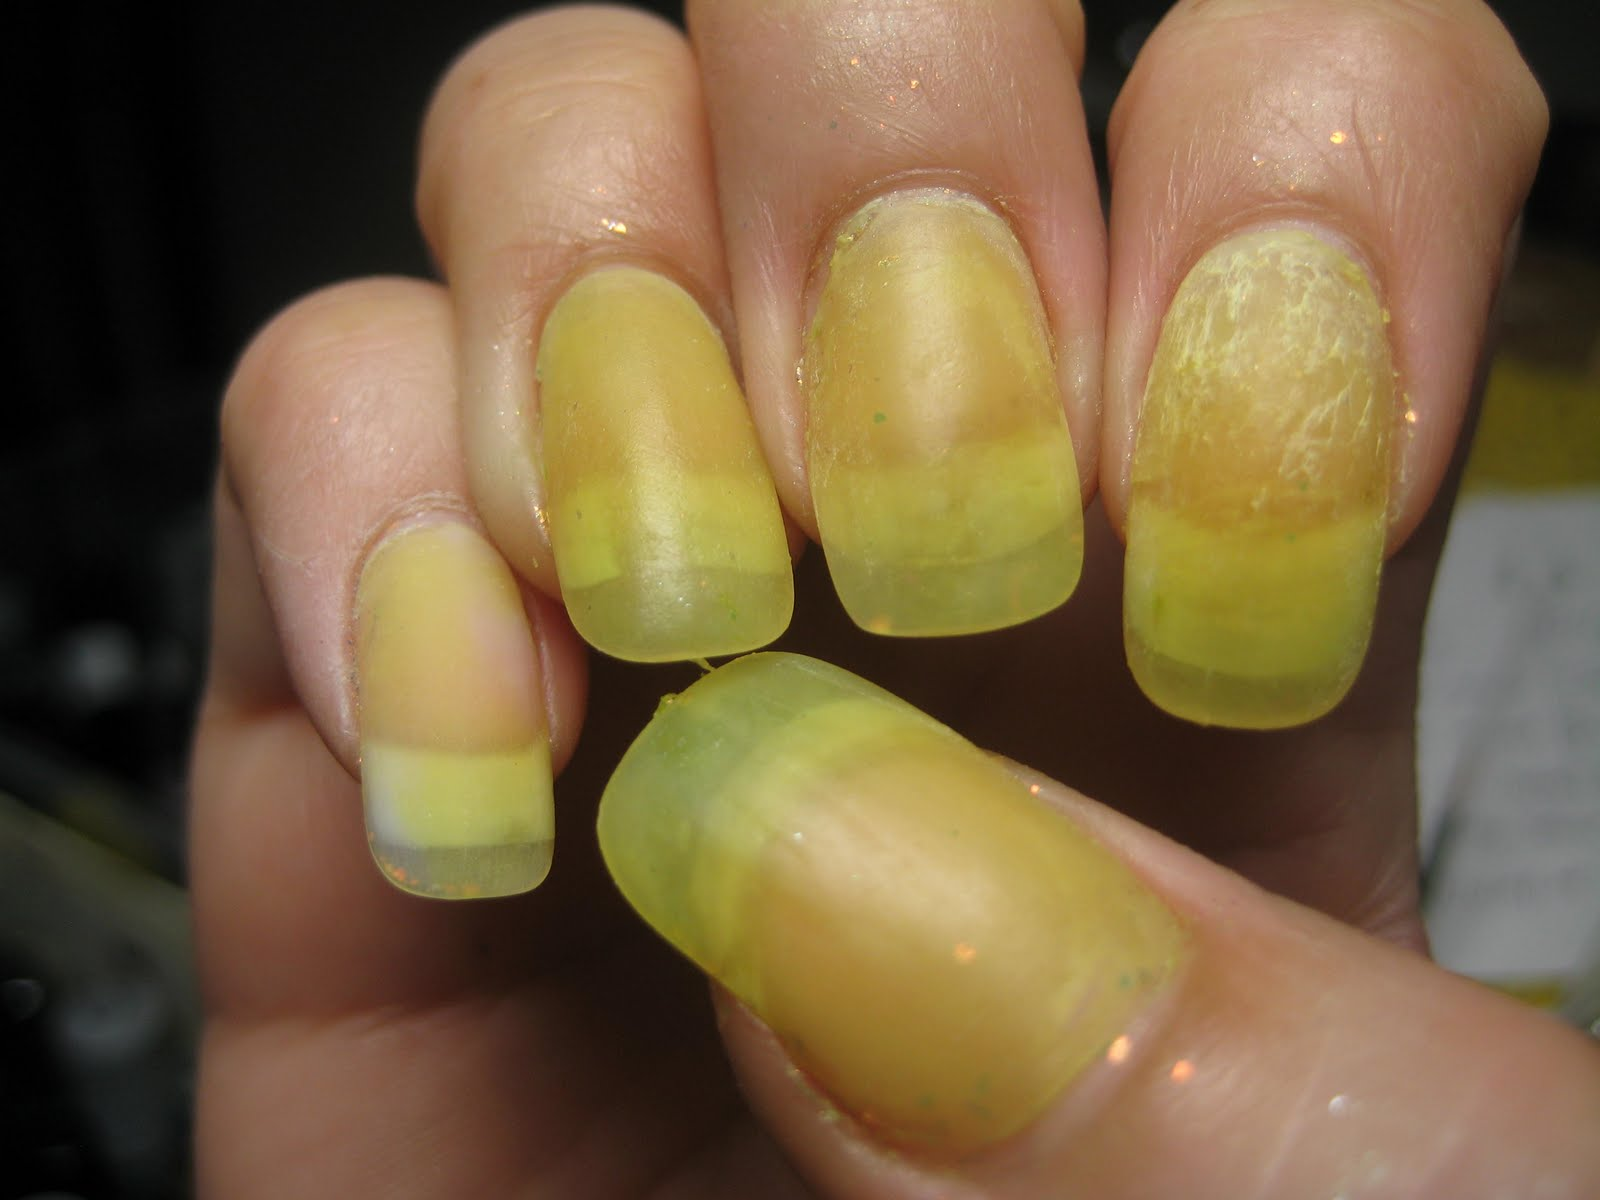 Nails Speak About Your Health